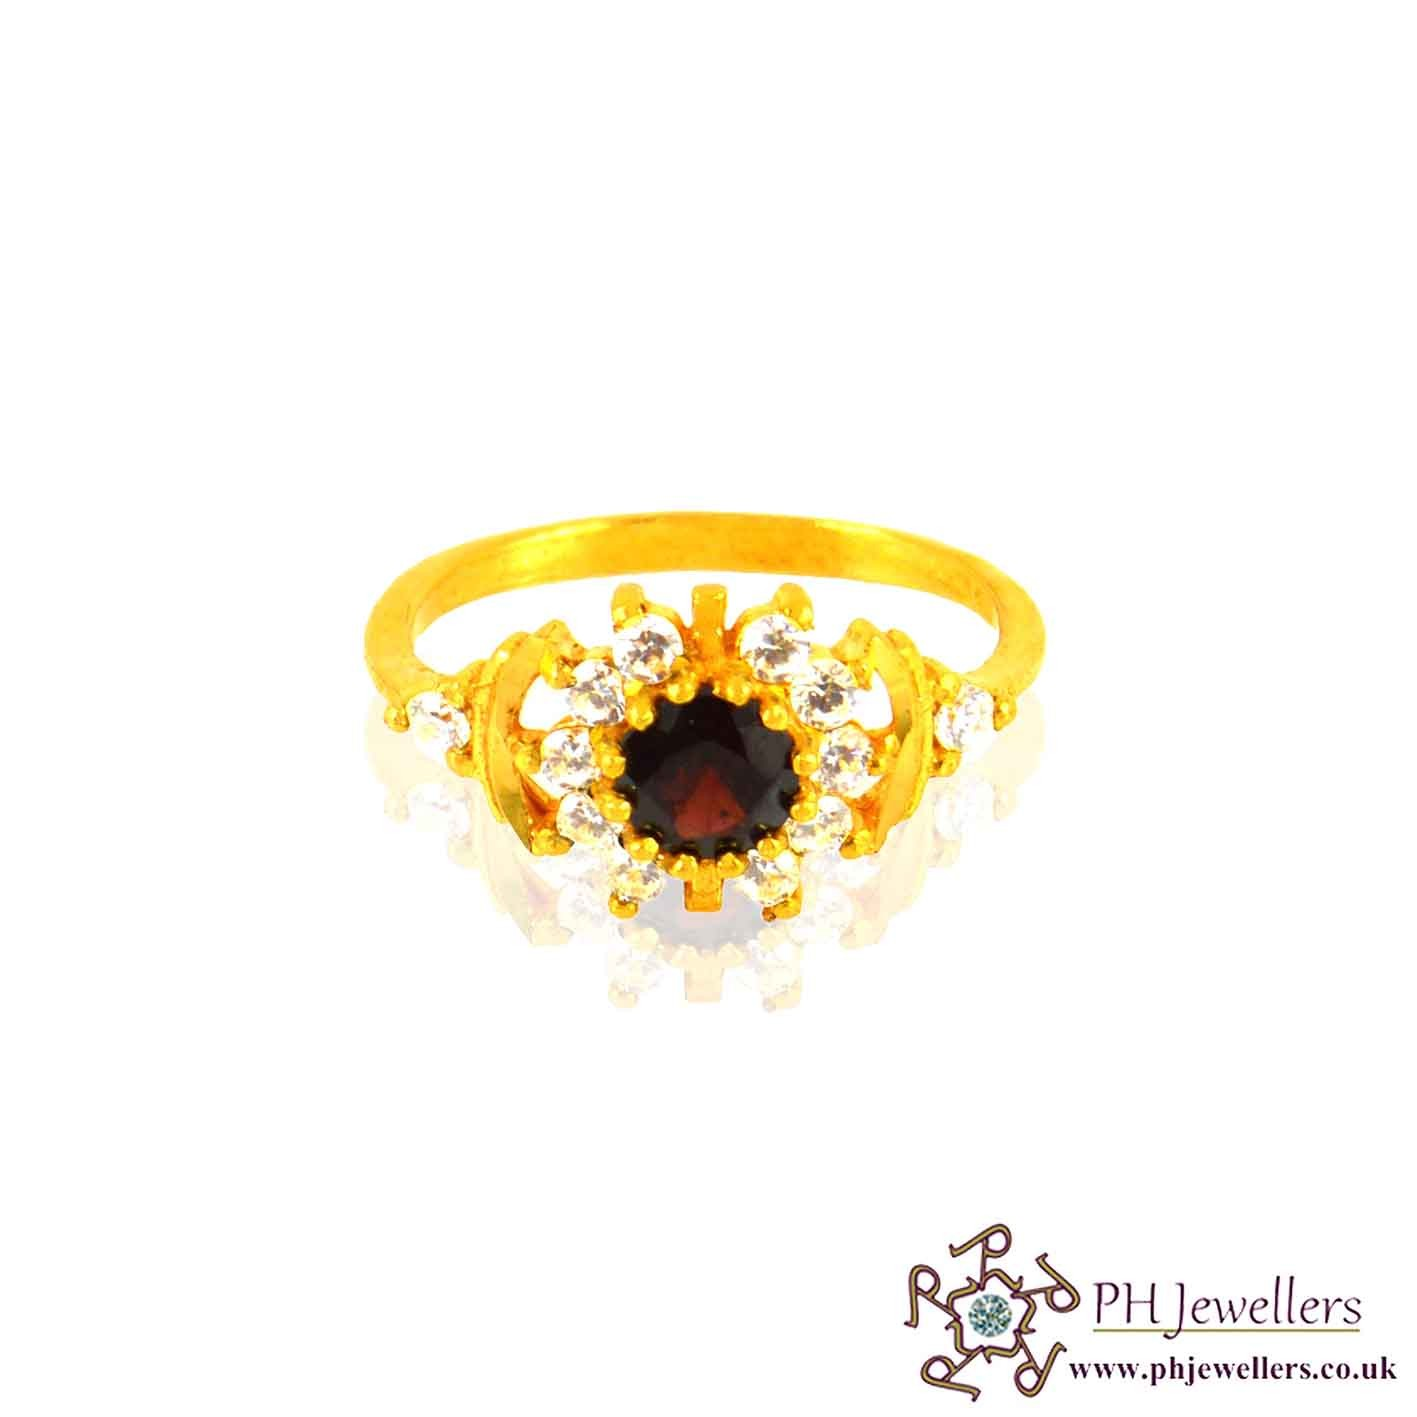 22ct 916 Hallmark Yellow Gold Round Garnet Size K,L,M Ring CZ SR14